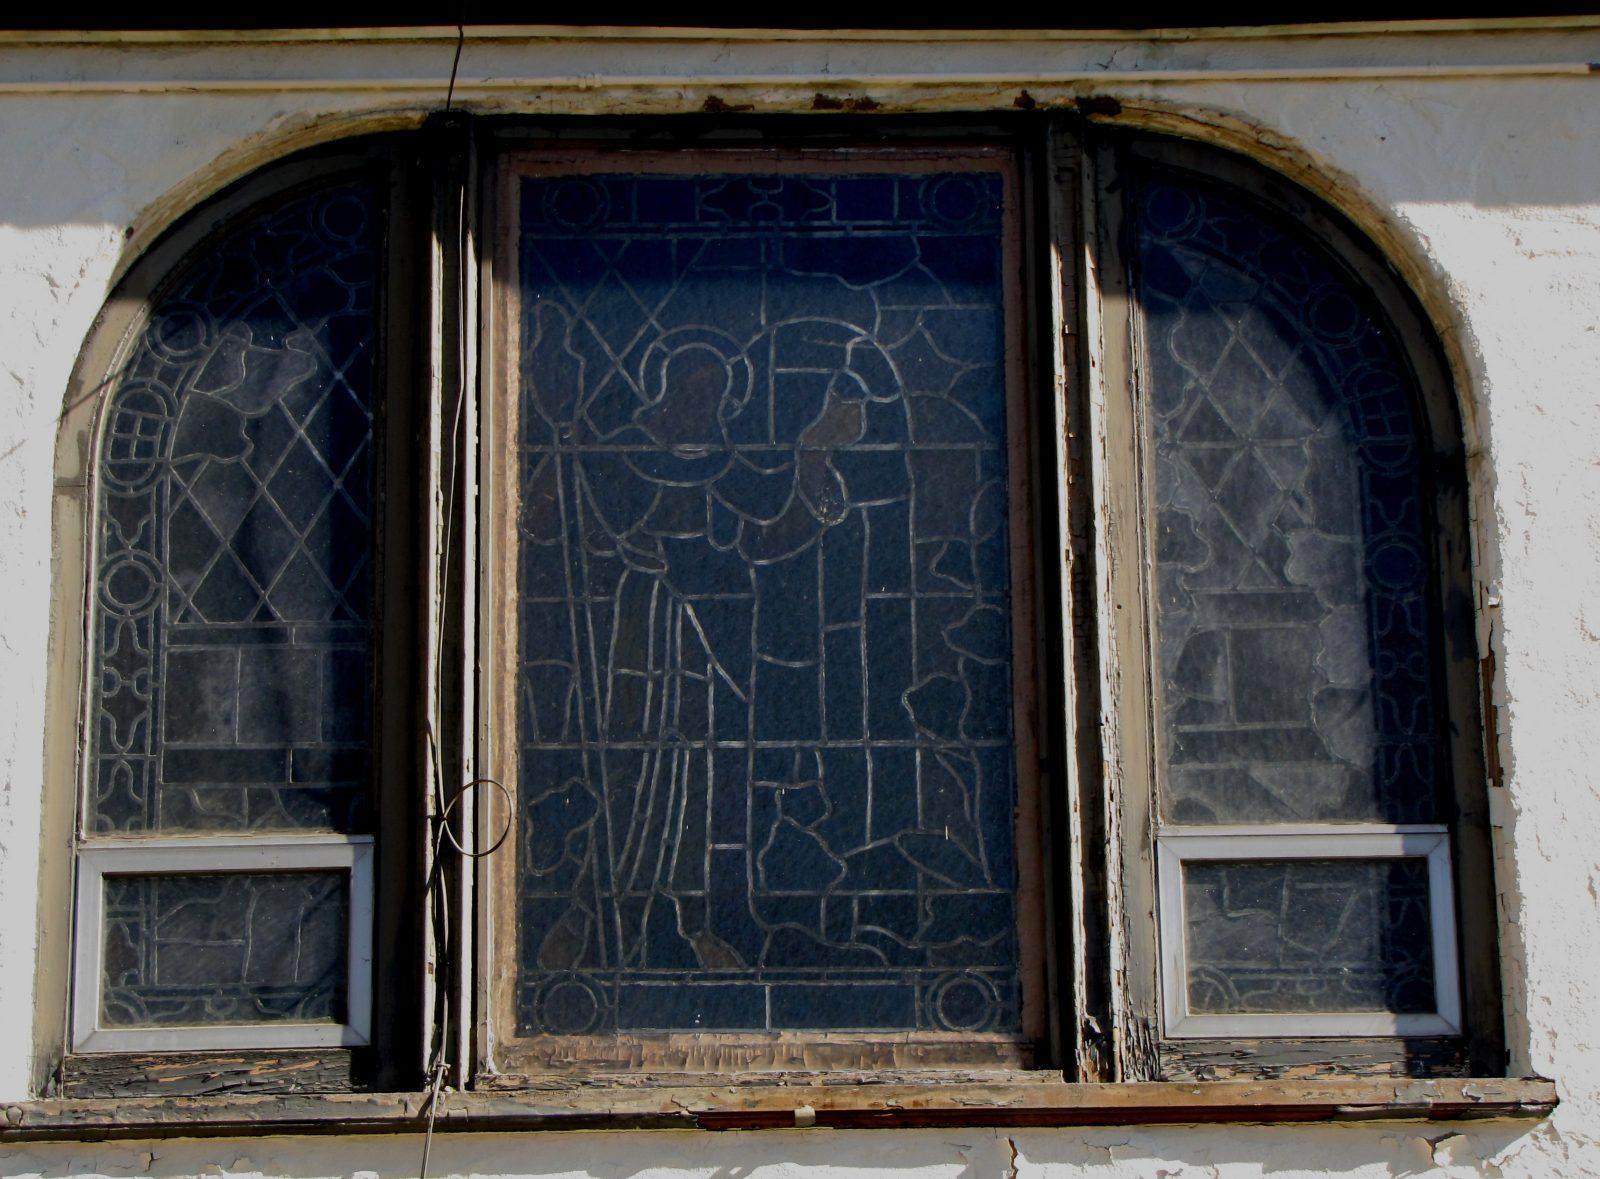 stained glass repair, stained glass windows, stained glass window frames